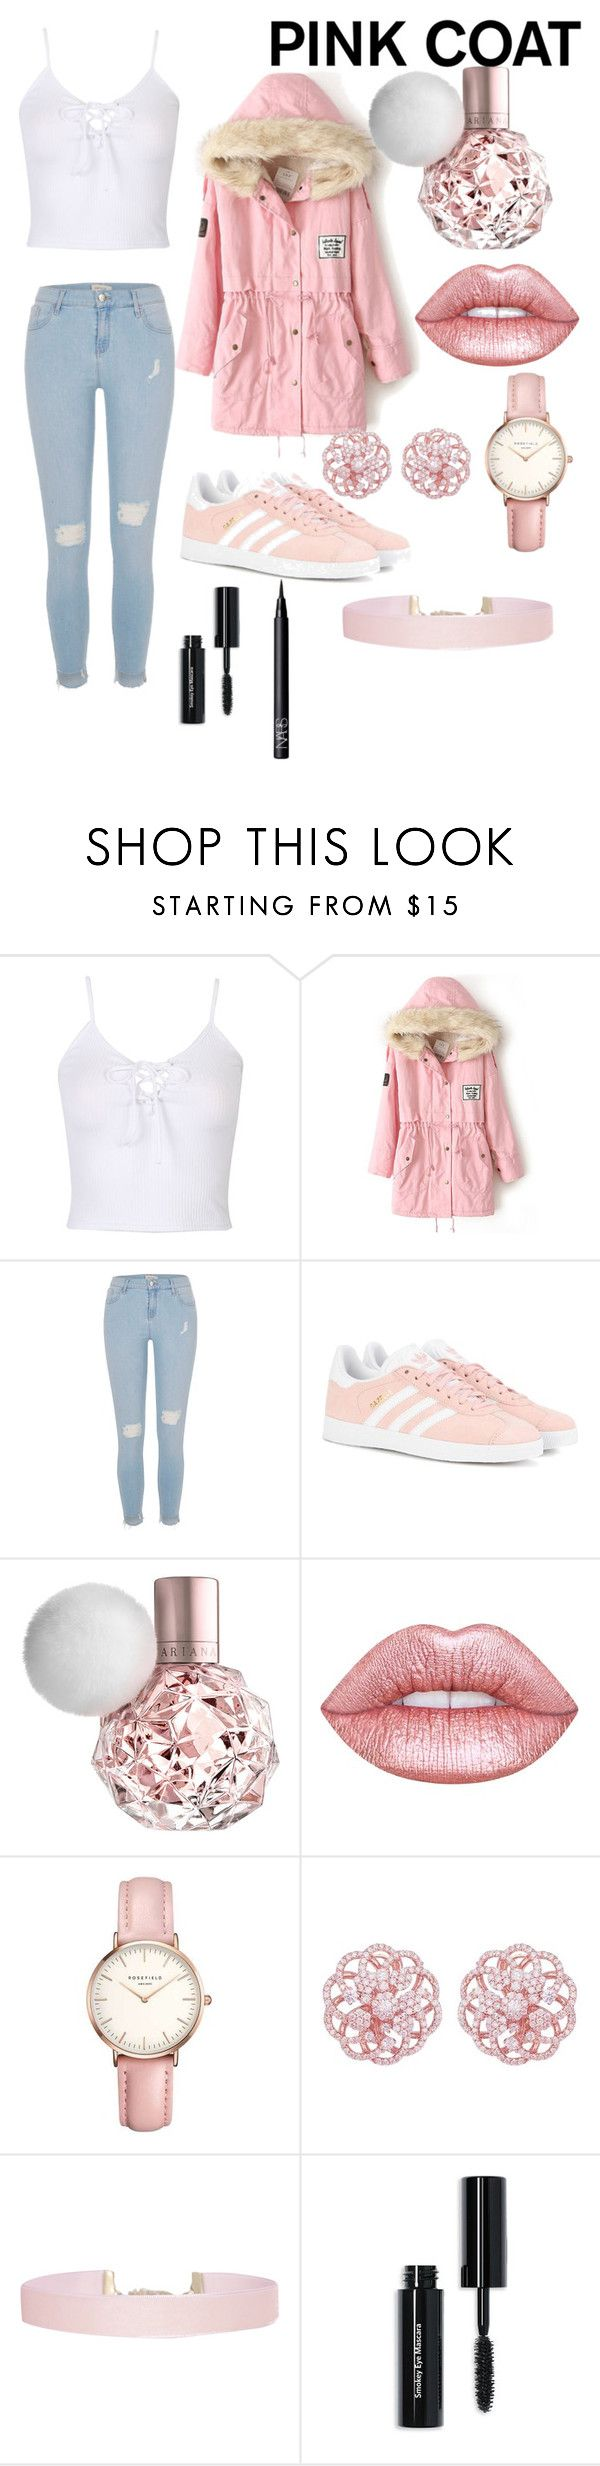 """""""Pink Coat"""" by zaddycellie ❤ liked on Polyvore featuring WithChic, River Island, adidas Originals, Lime Crime, Topshop, Humble Chic, Bobbi Brown Cosmetics and NARS Cosmetics"""